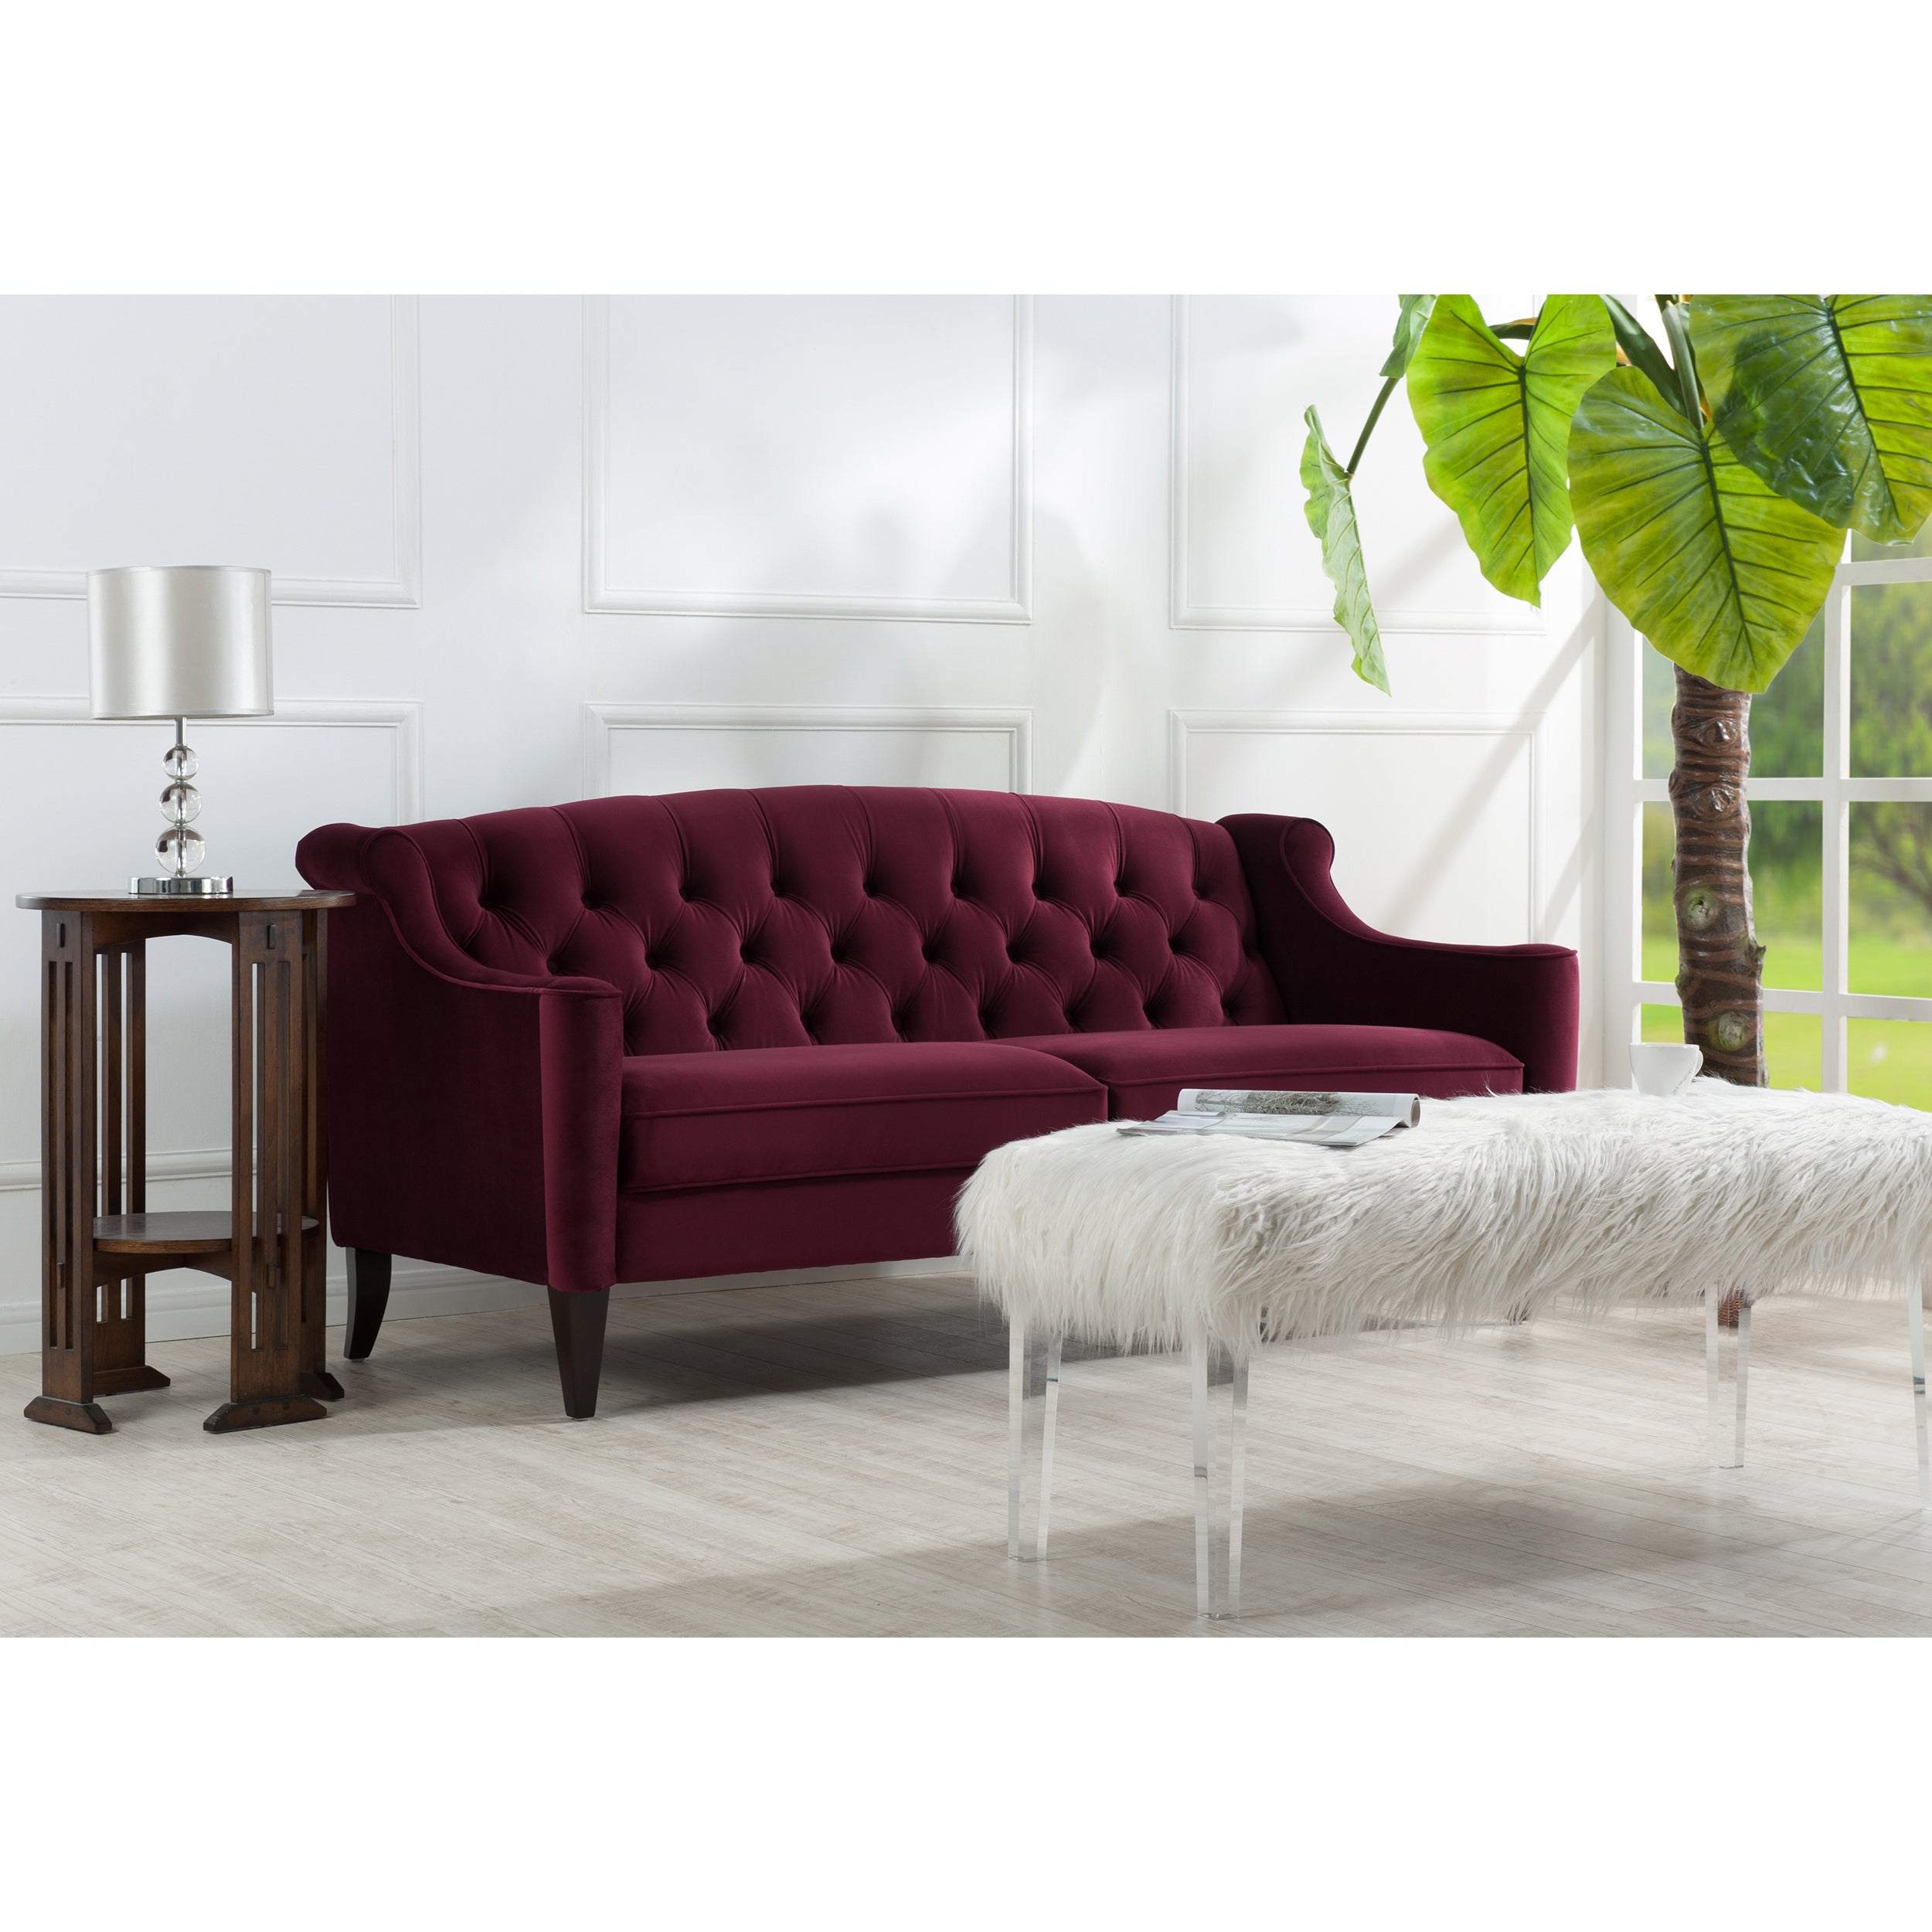 Jennifer Taylor Ken Upholstered Sofa